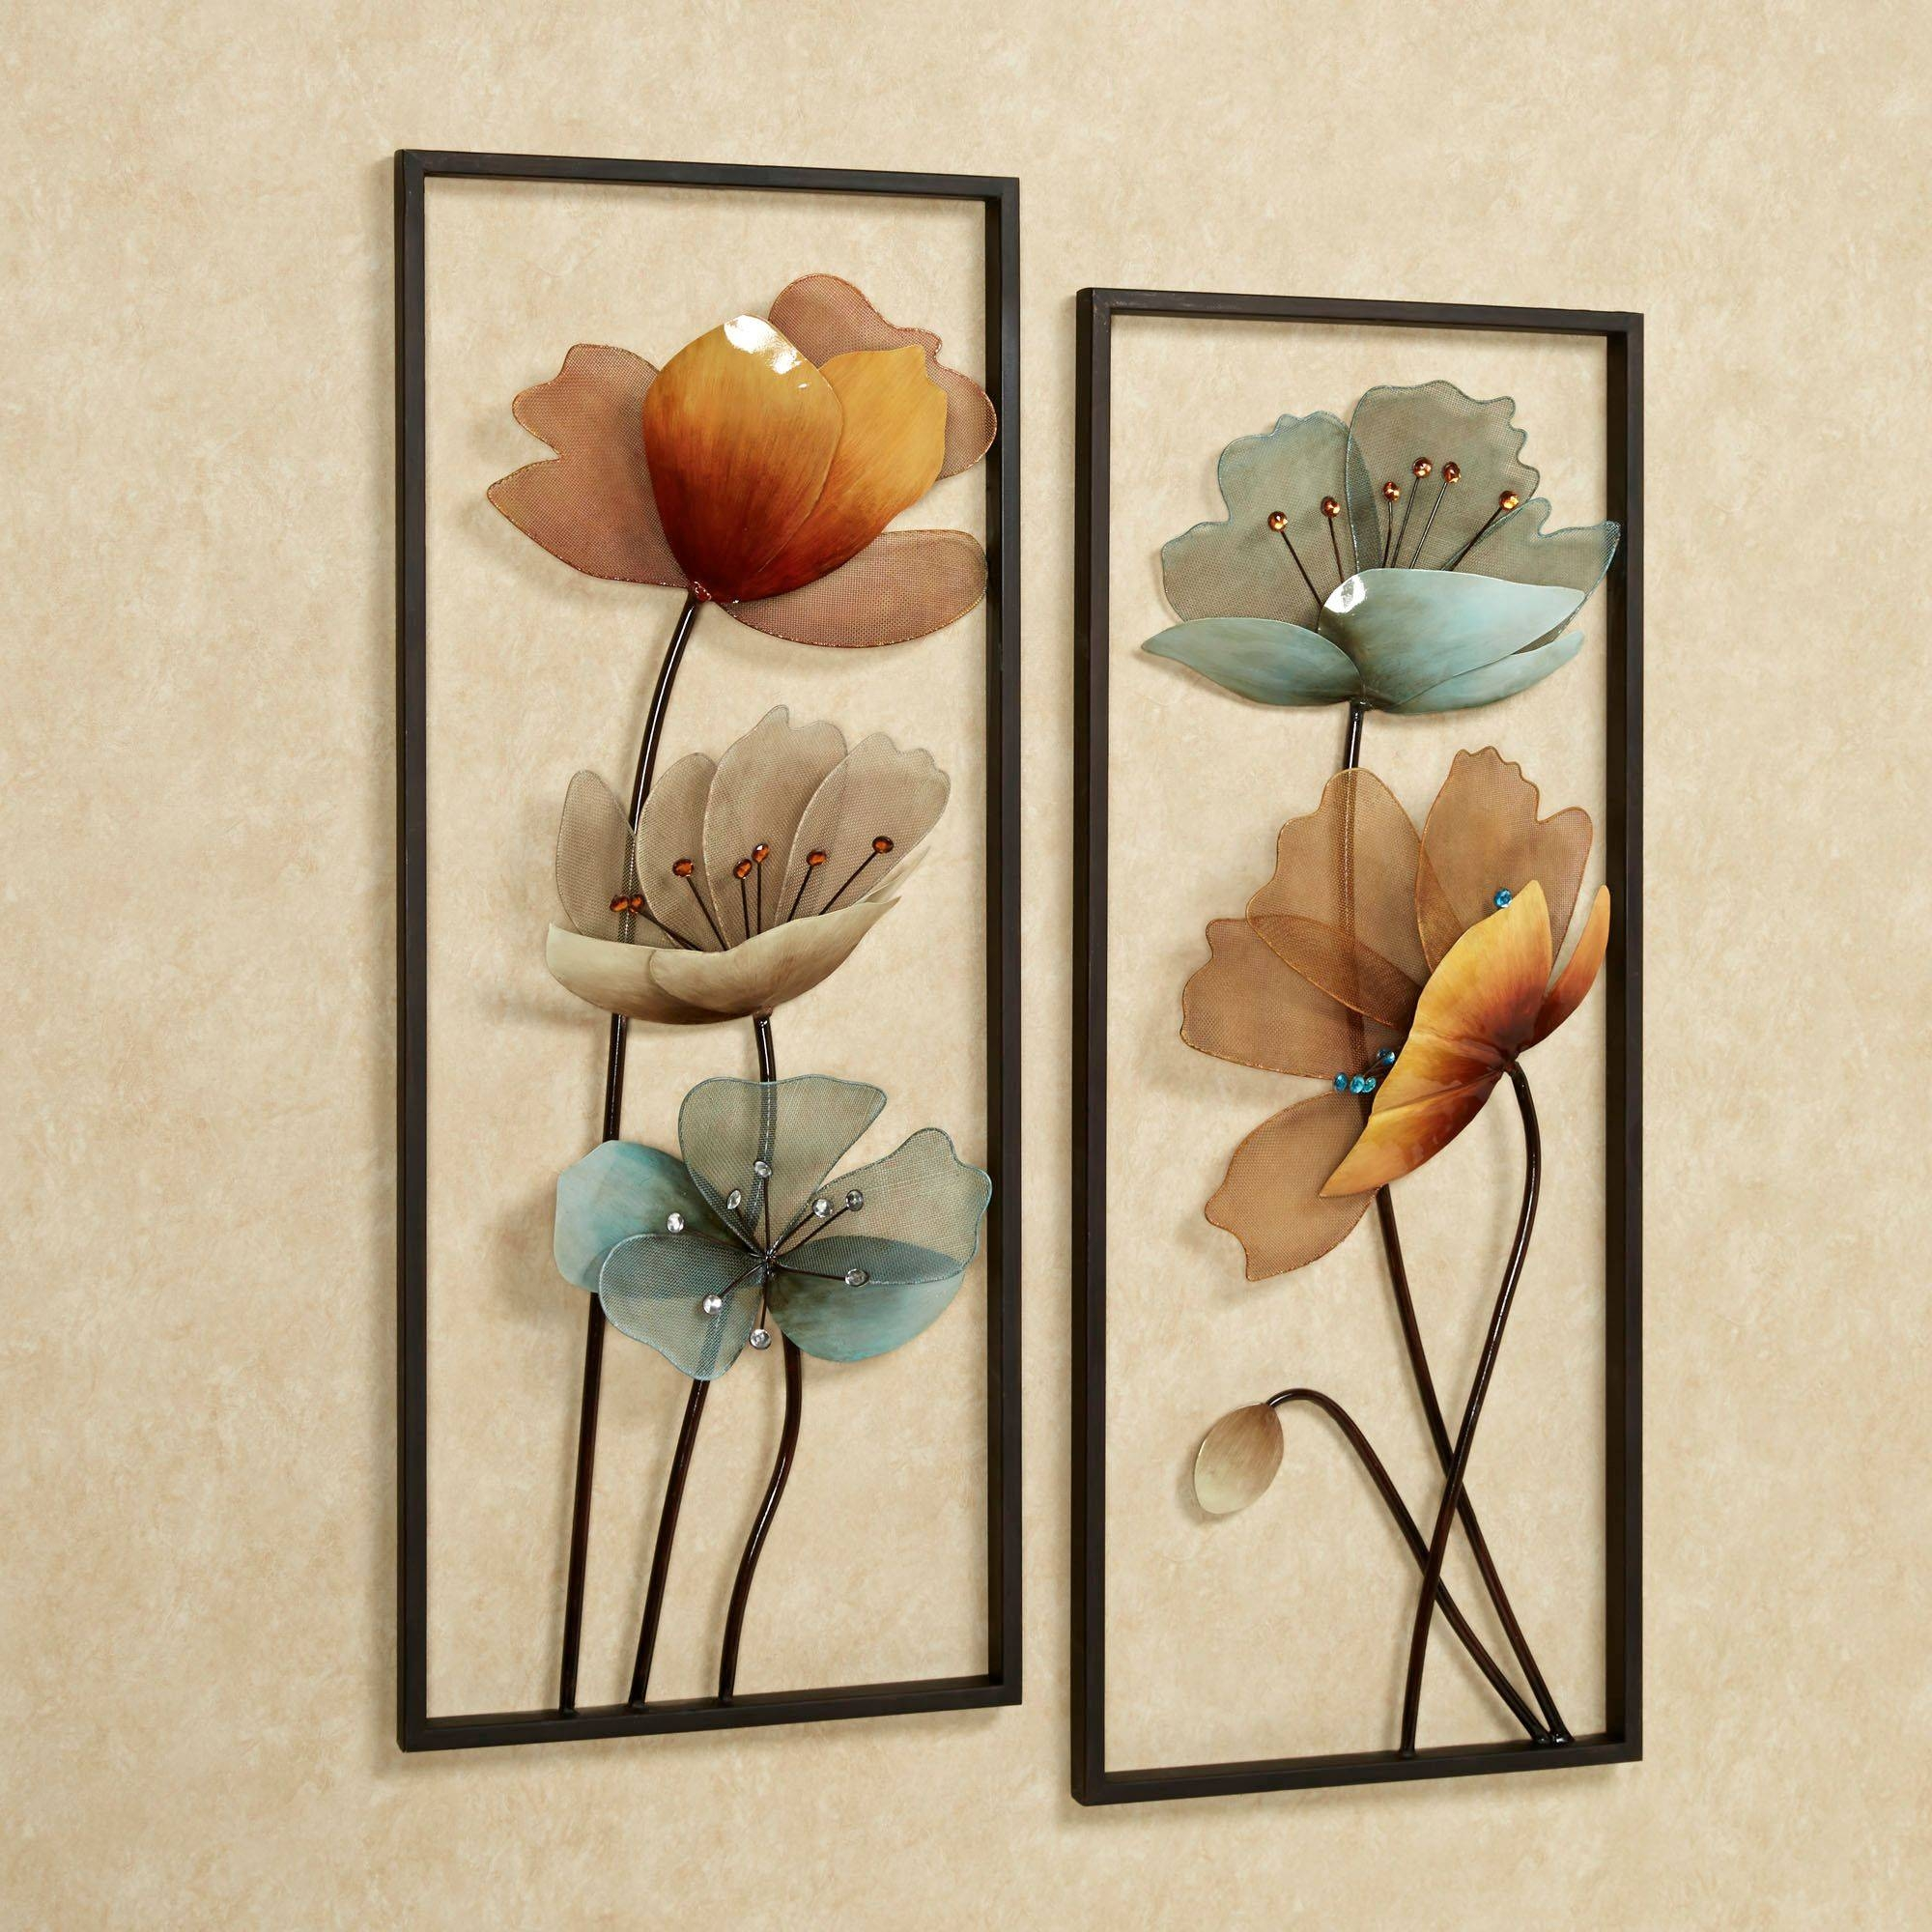 Splendid Metal Flower Wall Decor Bed Bath Beyond Decorations Brown Regarding Best And Newest Bed Bath And Beyond 3d Wall Art (View 14 of 20)